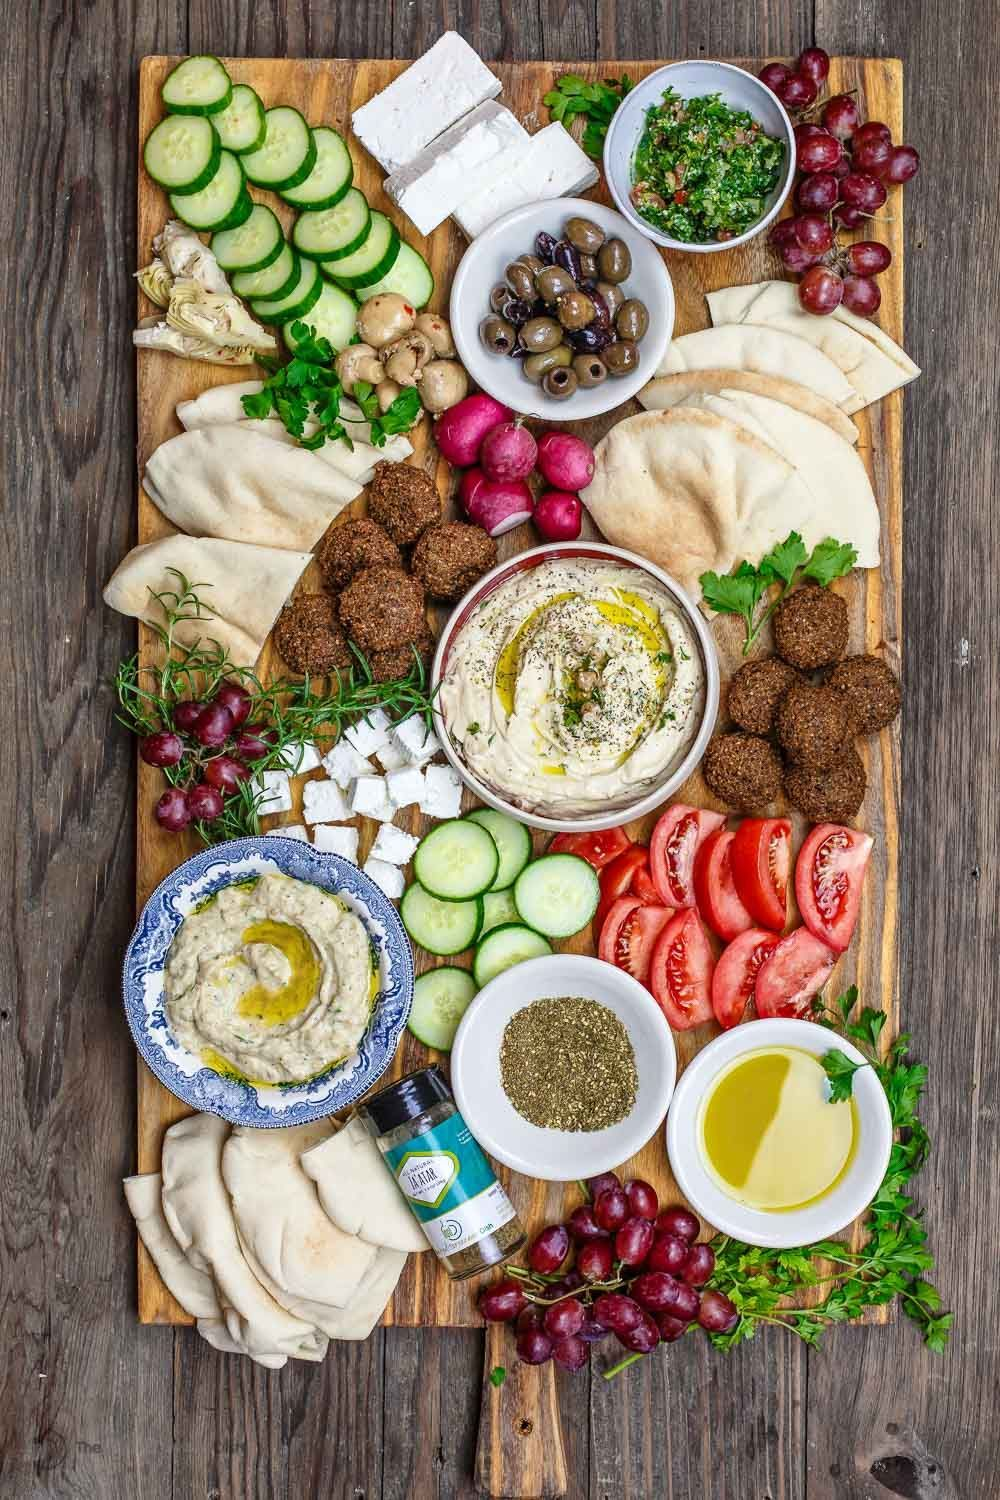 Ultimate Mediterranean Brunch Board from The Mediterranean Dish #grilledshrimp Mediterranean Diet Breakfast Board with falafel, hummus, black olives, feta cheese and veggies, served on a board.